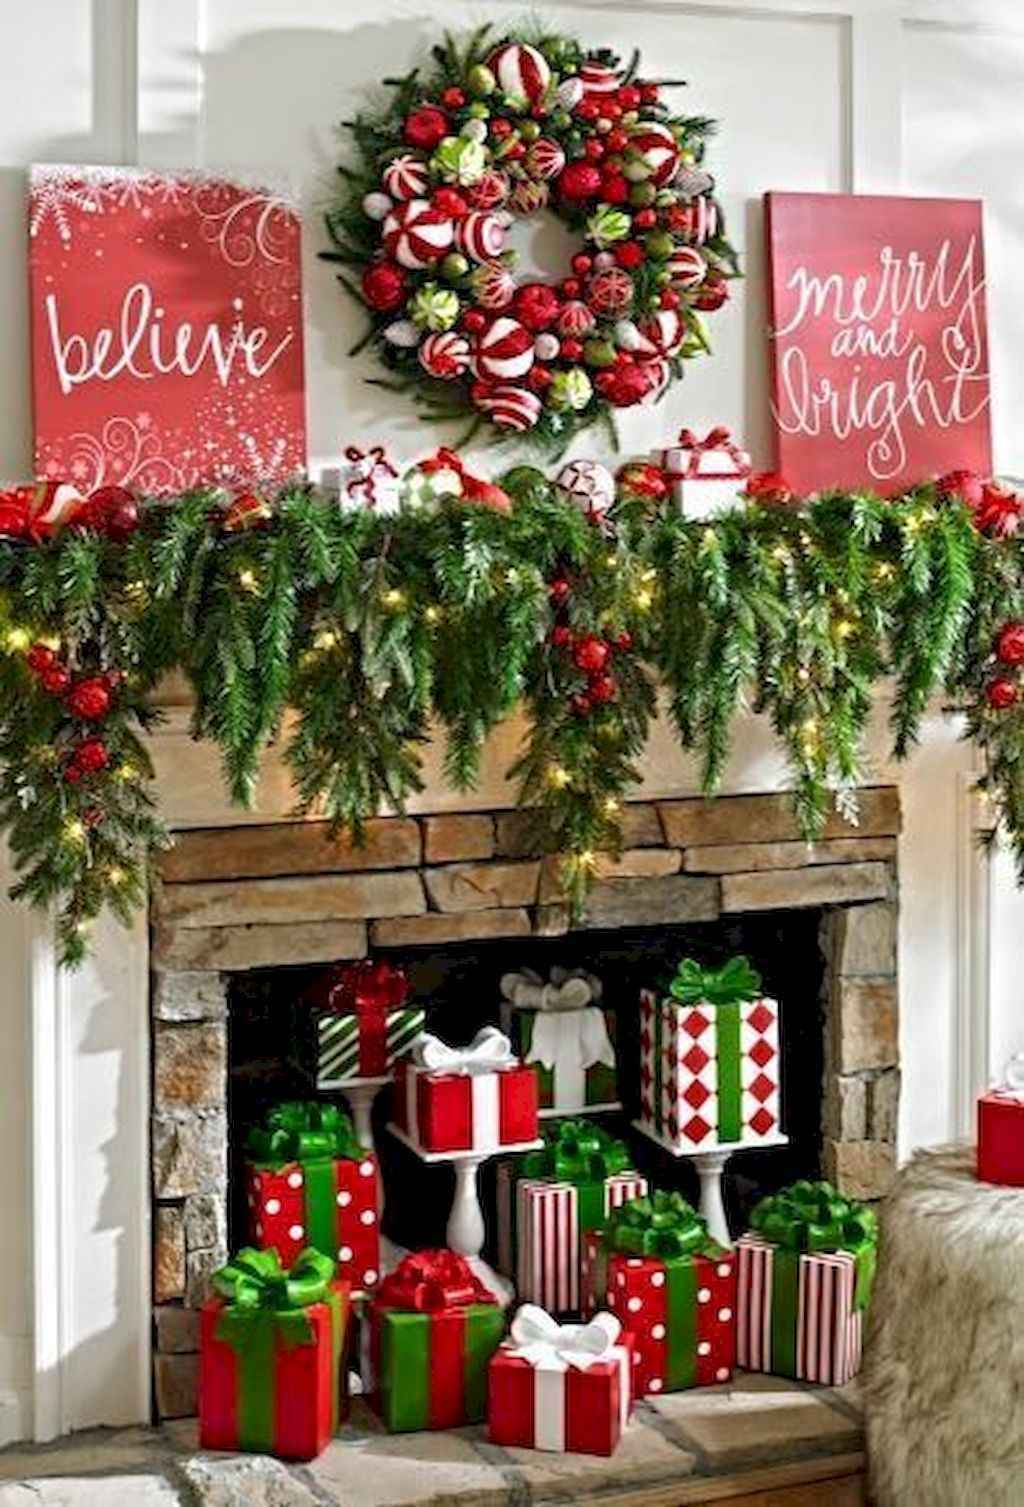 1024 1507 in 25 awesome christmas decorations apartment ideas